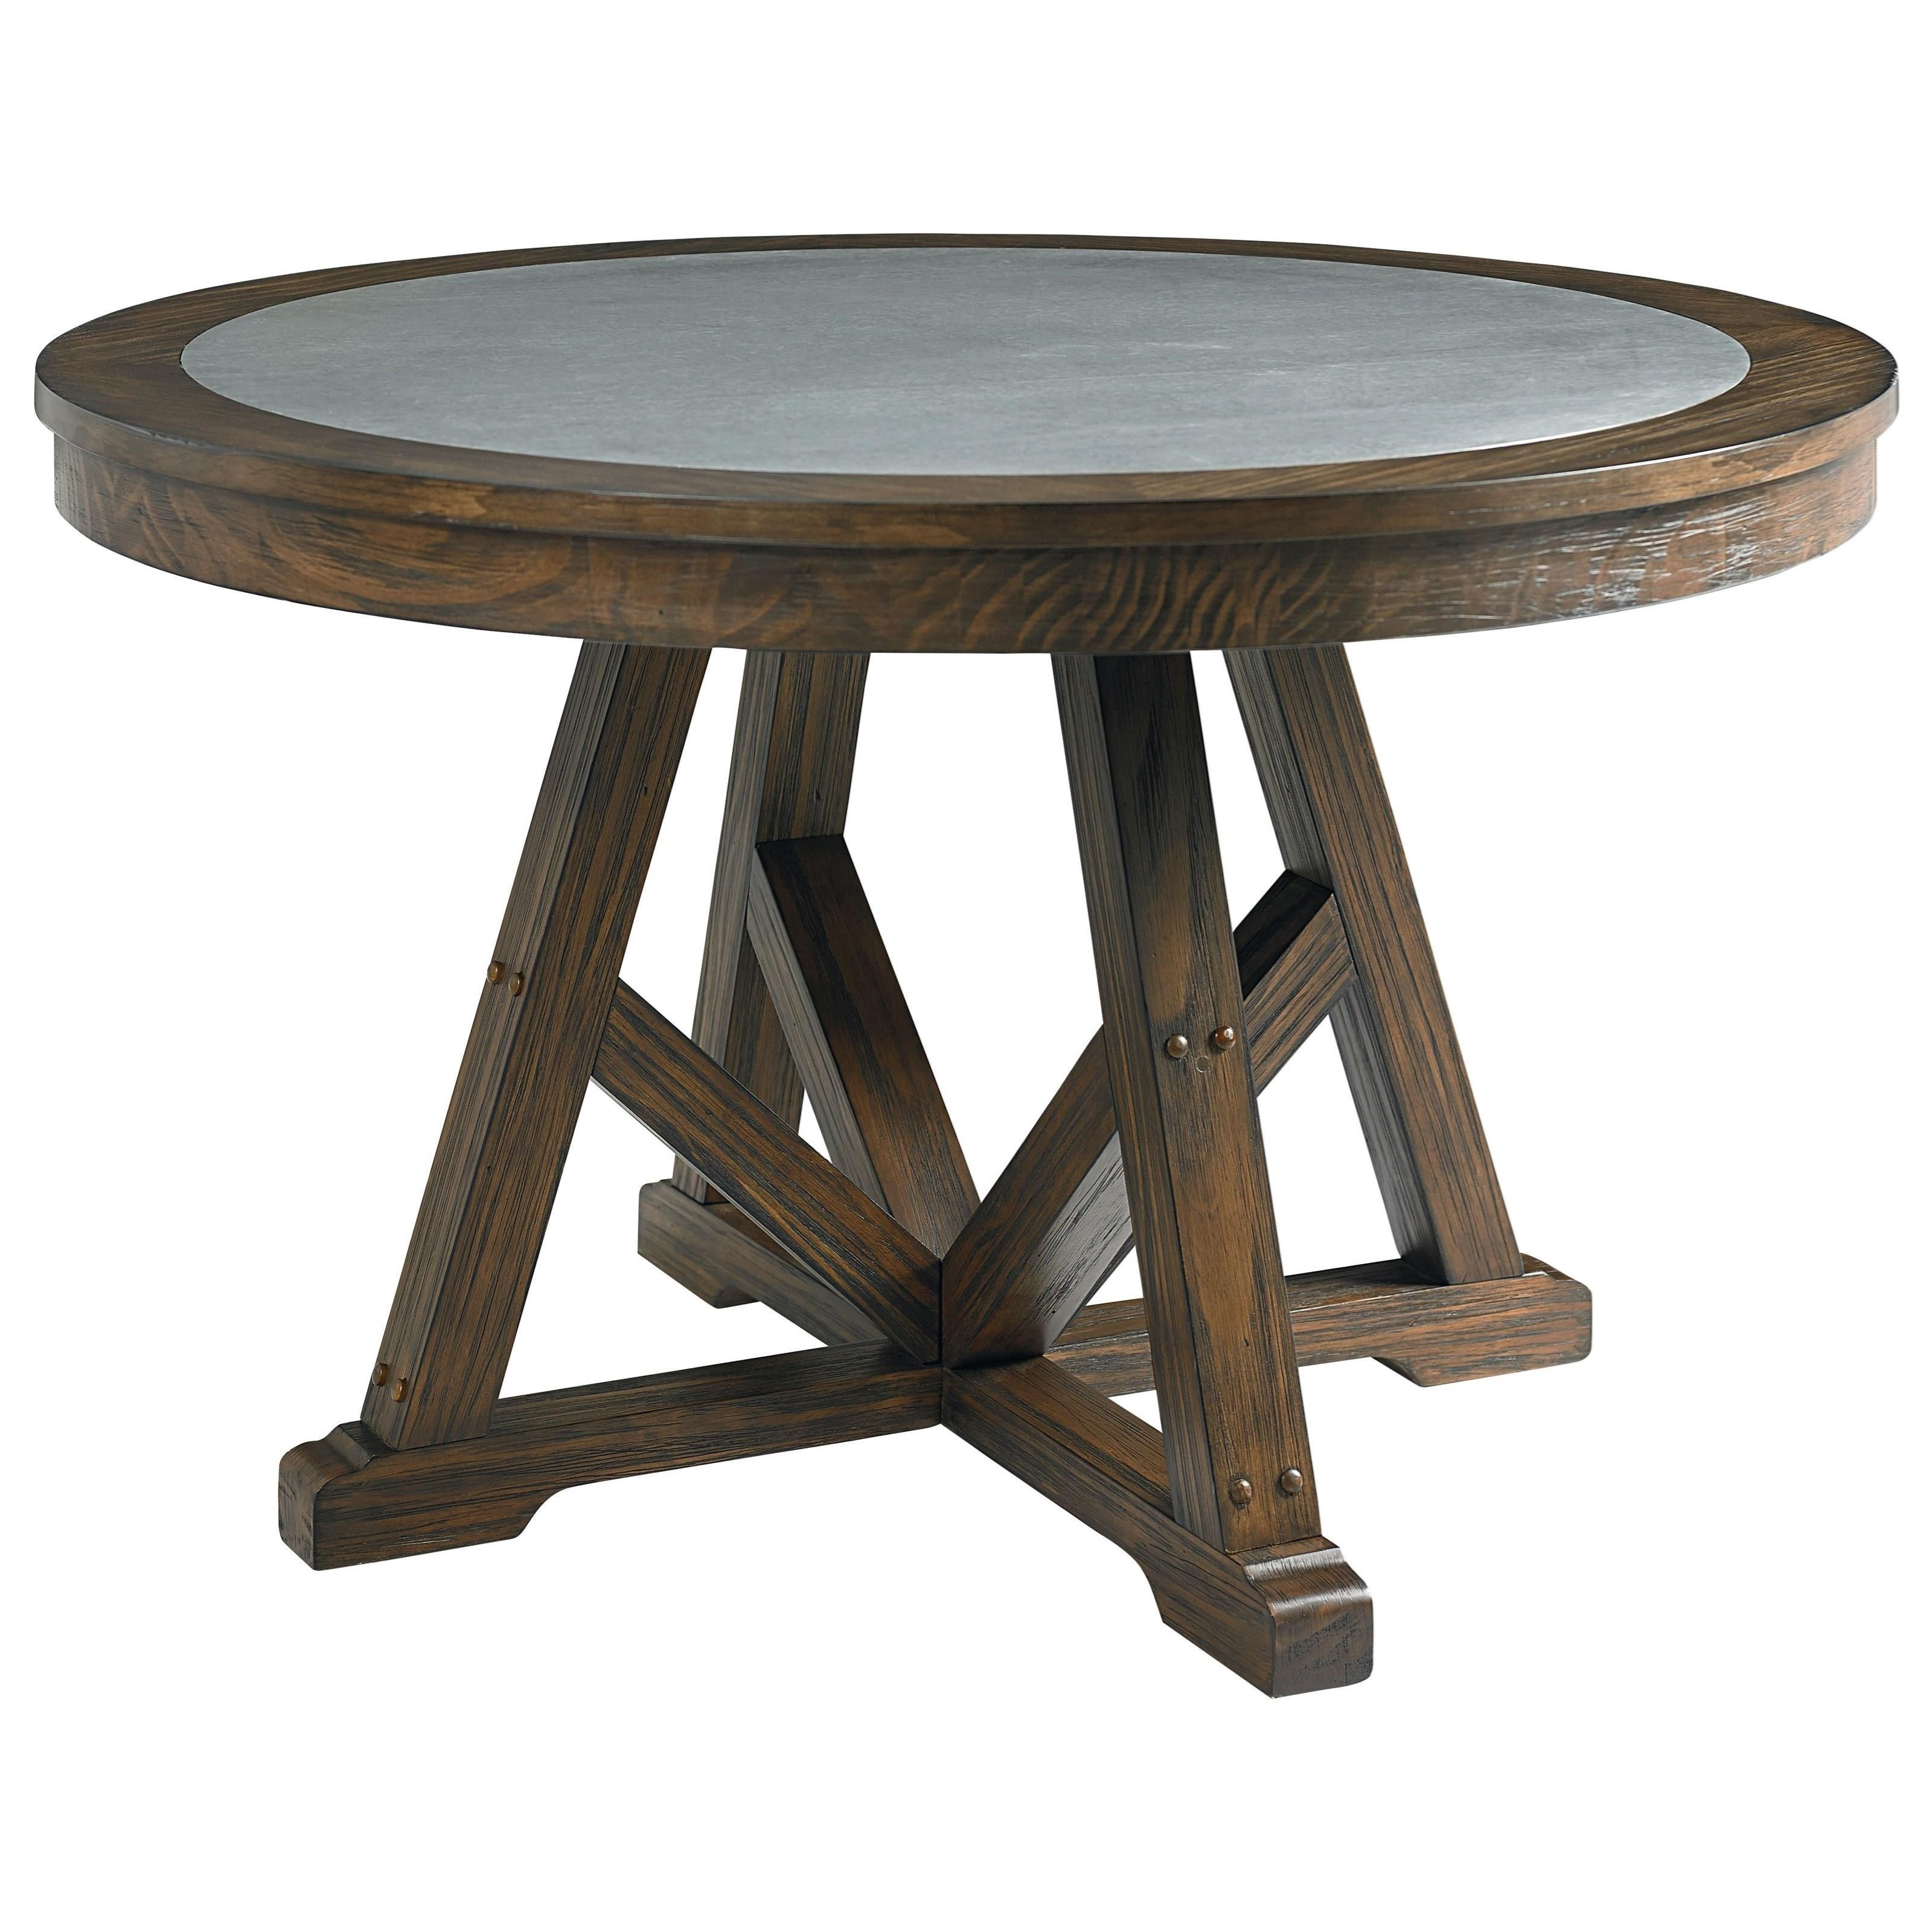 Standard furniture carter 10881 round dining table with for Standard dining table